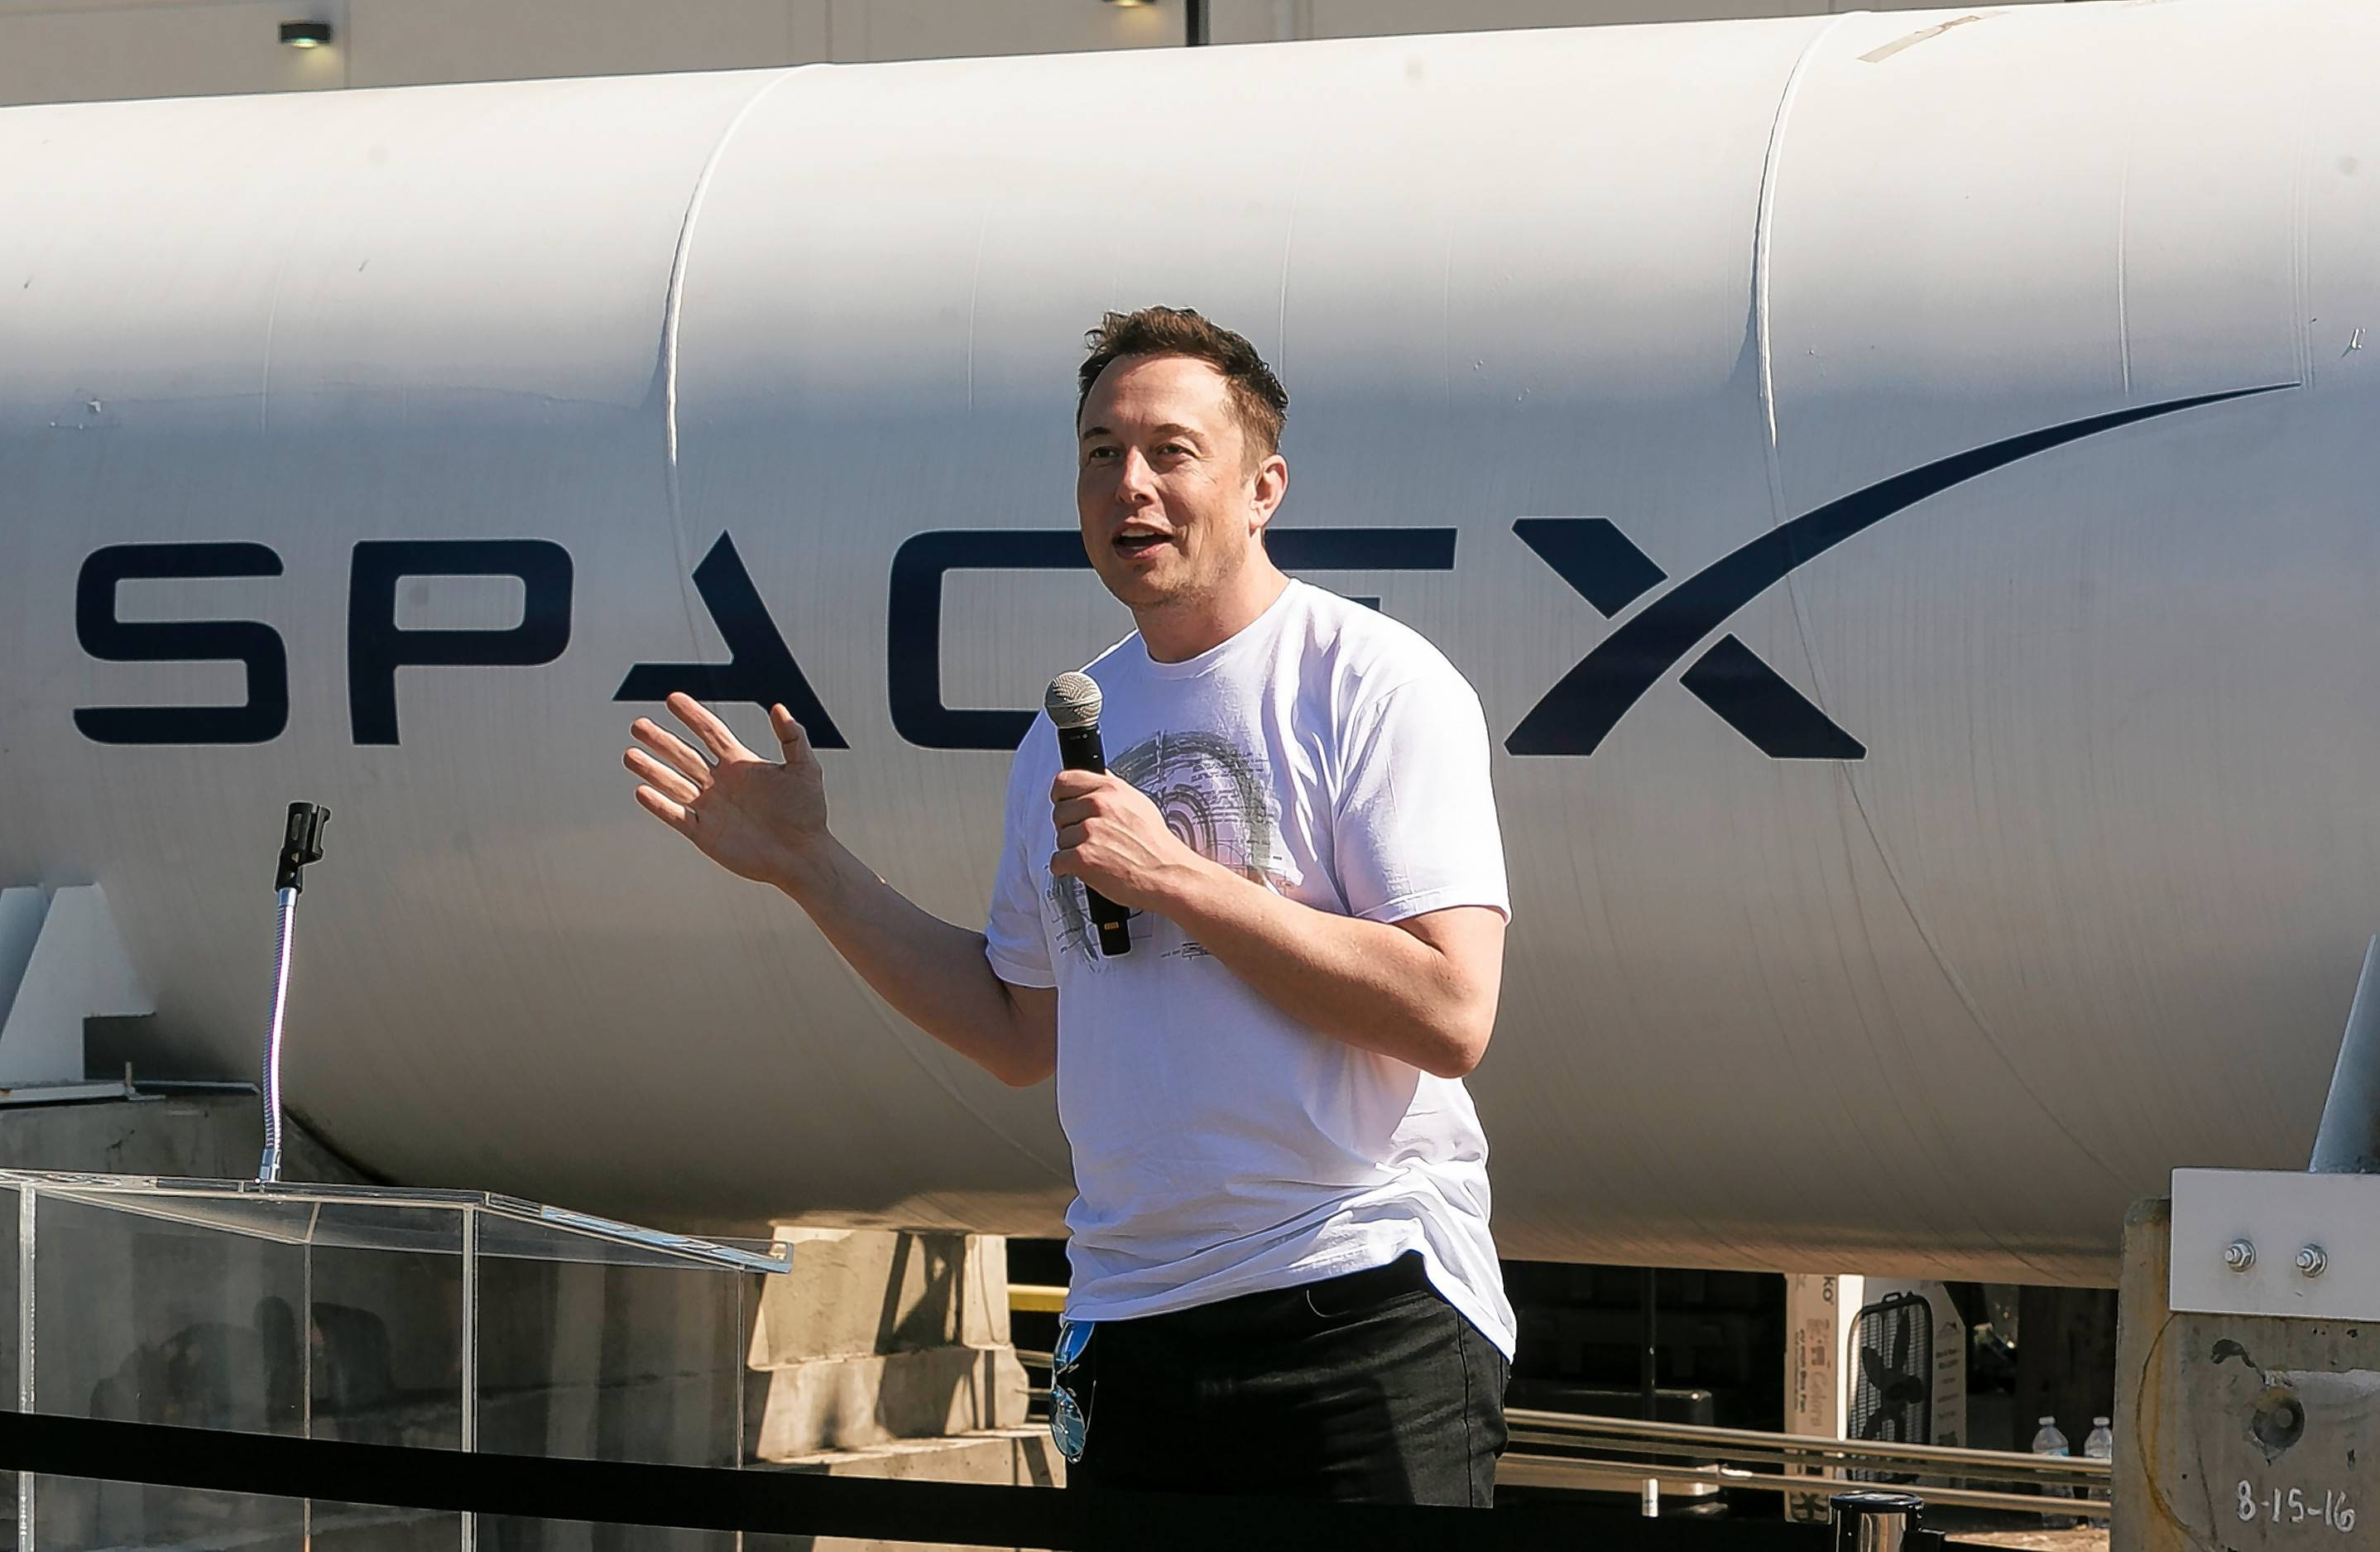 SpaceX CEO Elon Musk congratulates teams competing on the Hyperloop Pod Competition II at SpaceX's Hyperloop track in Hawthorne, Calif., Sunday, Aug 27, 2017. The Hyperloop system built by SpaceX is approximately one mile in length with a six-foot outer diameter.